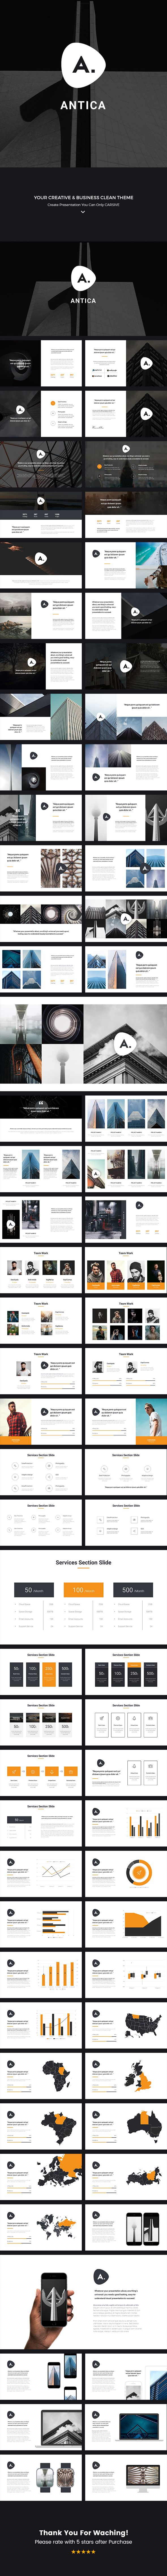 Antica Clean Keynote Template. Download: https://graphicriver.net/item/antica-clean-keynote-template/19203140?ref=thanhdesign